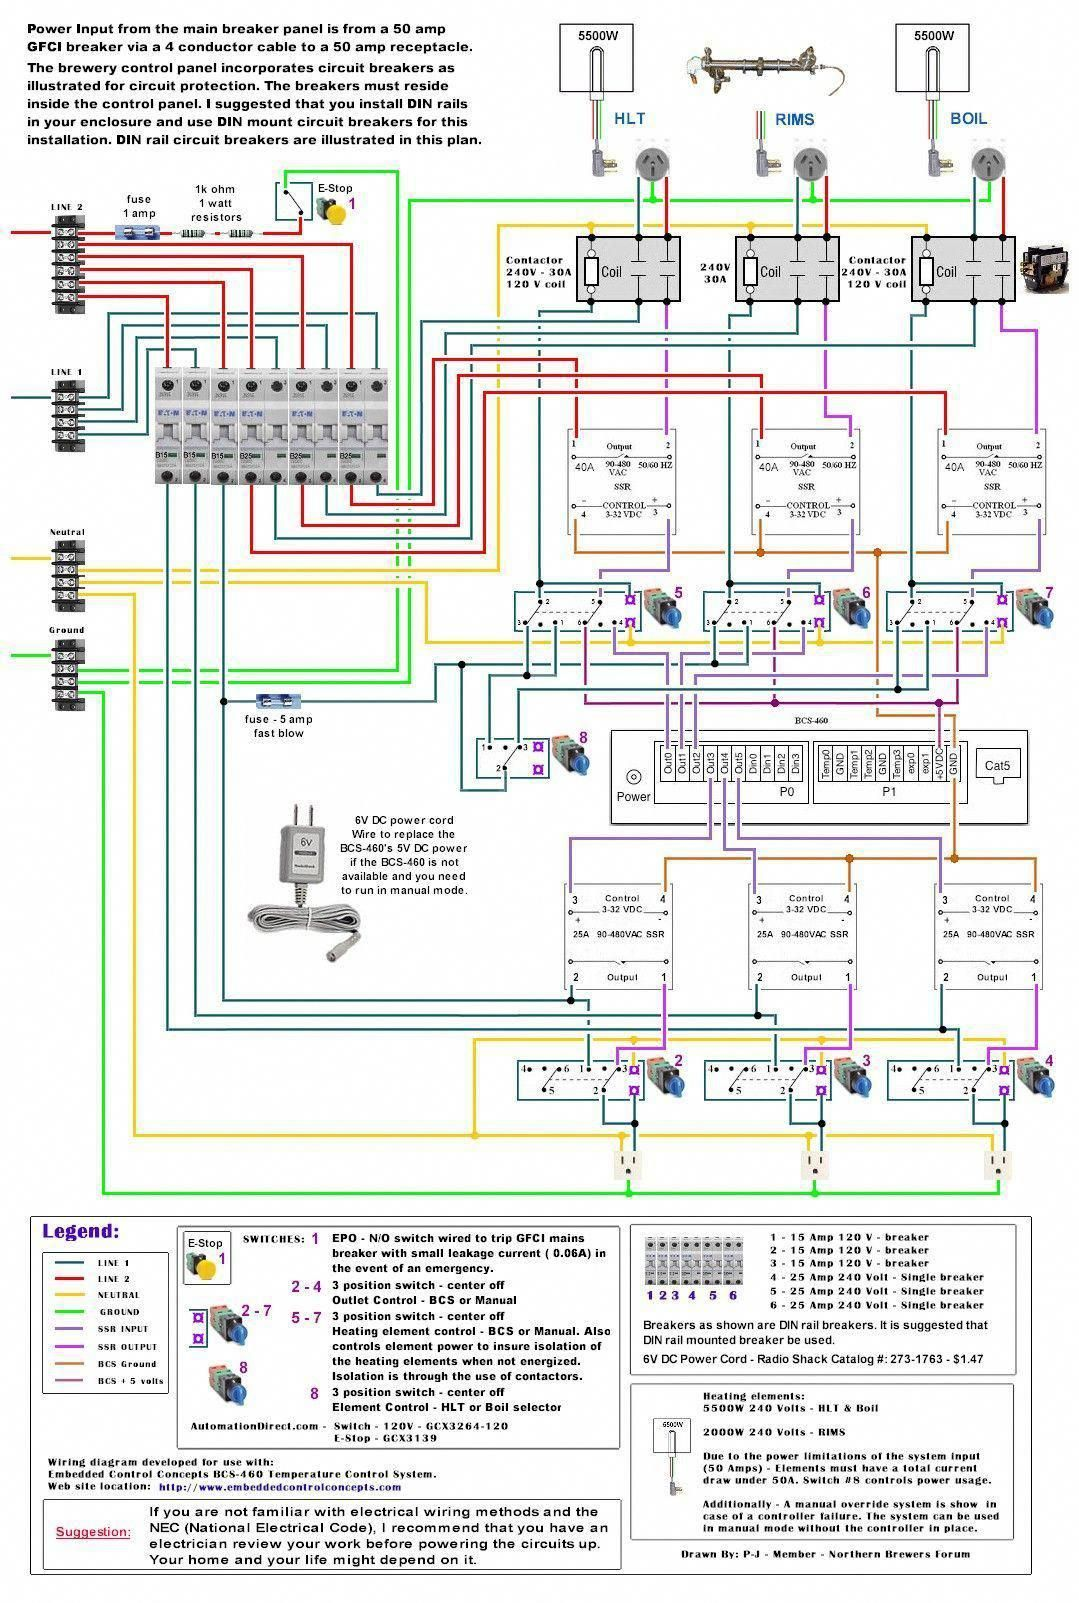 Electric Brewing Diagrams Homebrewingsetup Homebrewingdiy Home